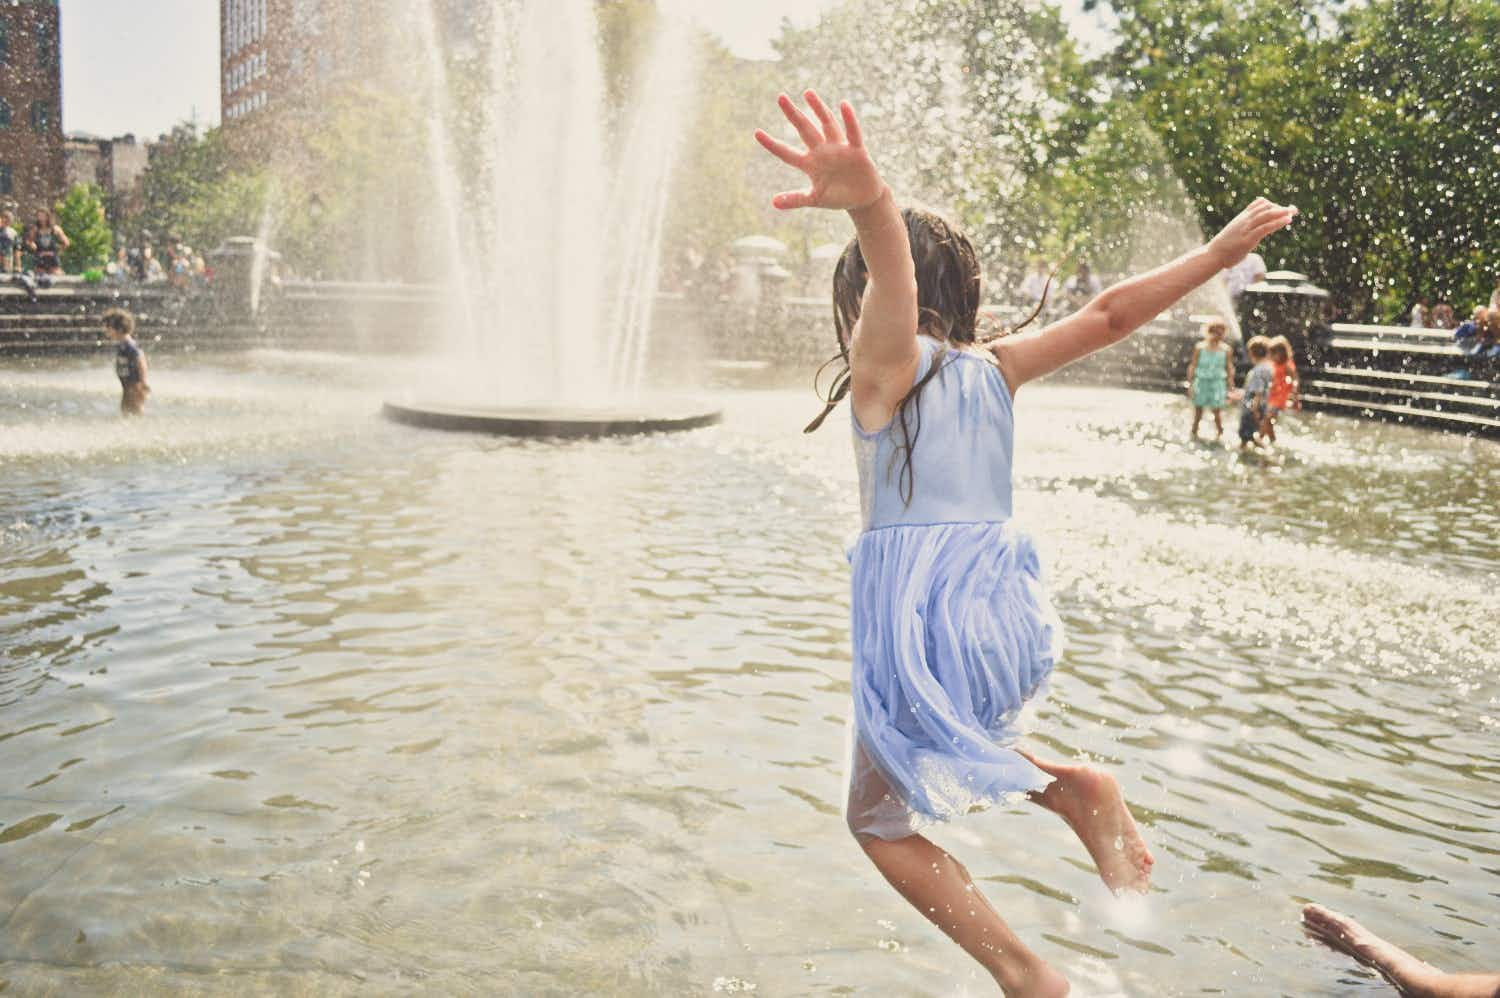 If it gets too hot  in New York, it's legal to jump into its fountains to cool down